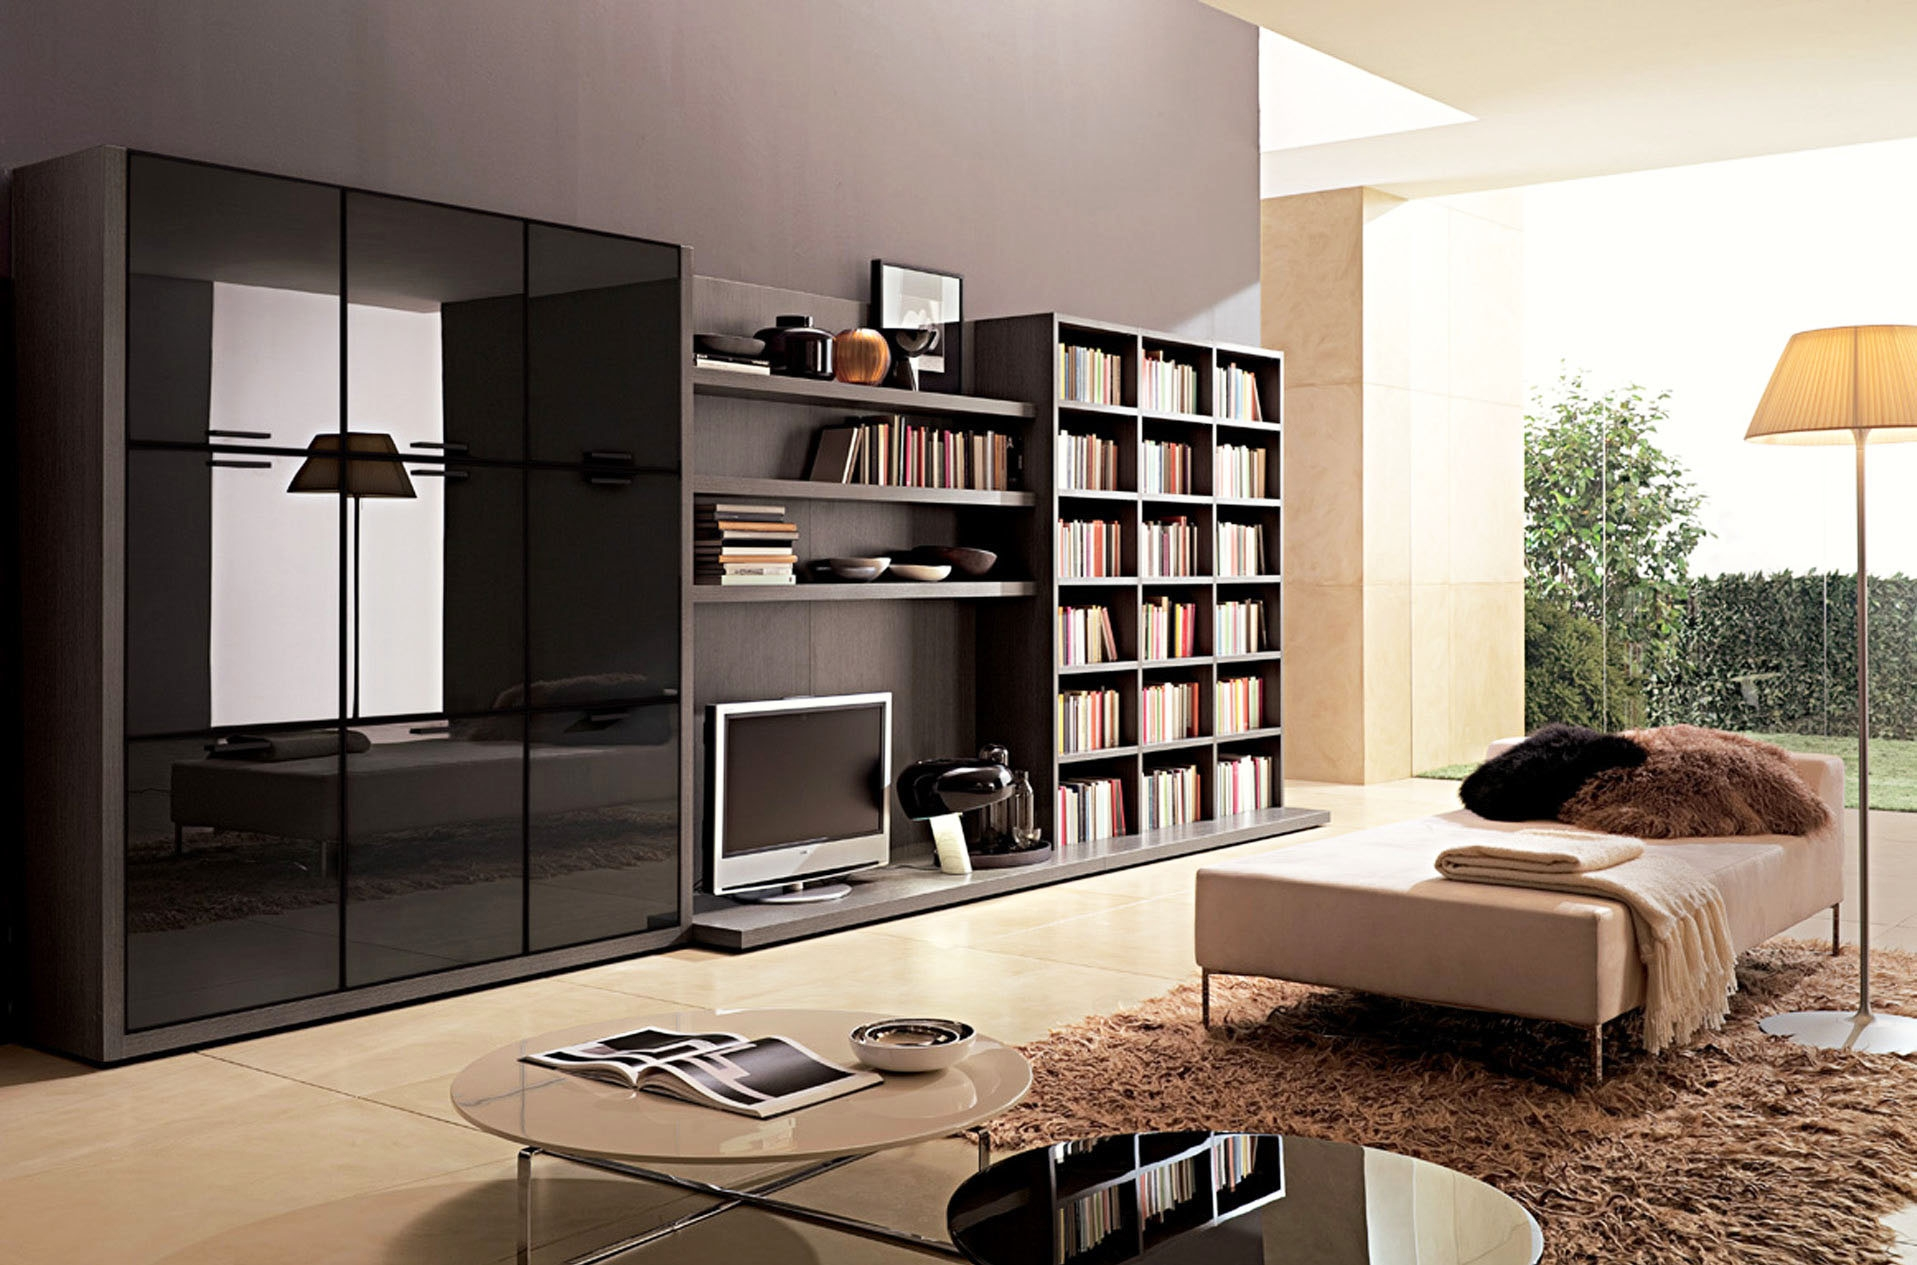 Black Storage Cabinet For Living Roomwall unit for living room